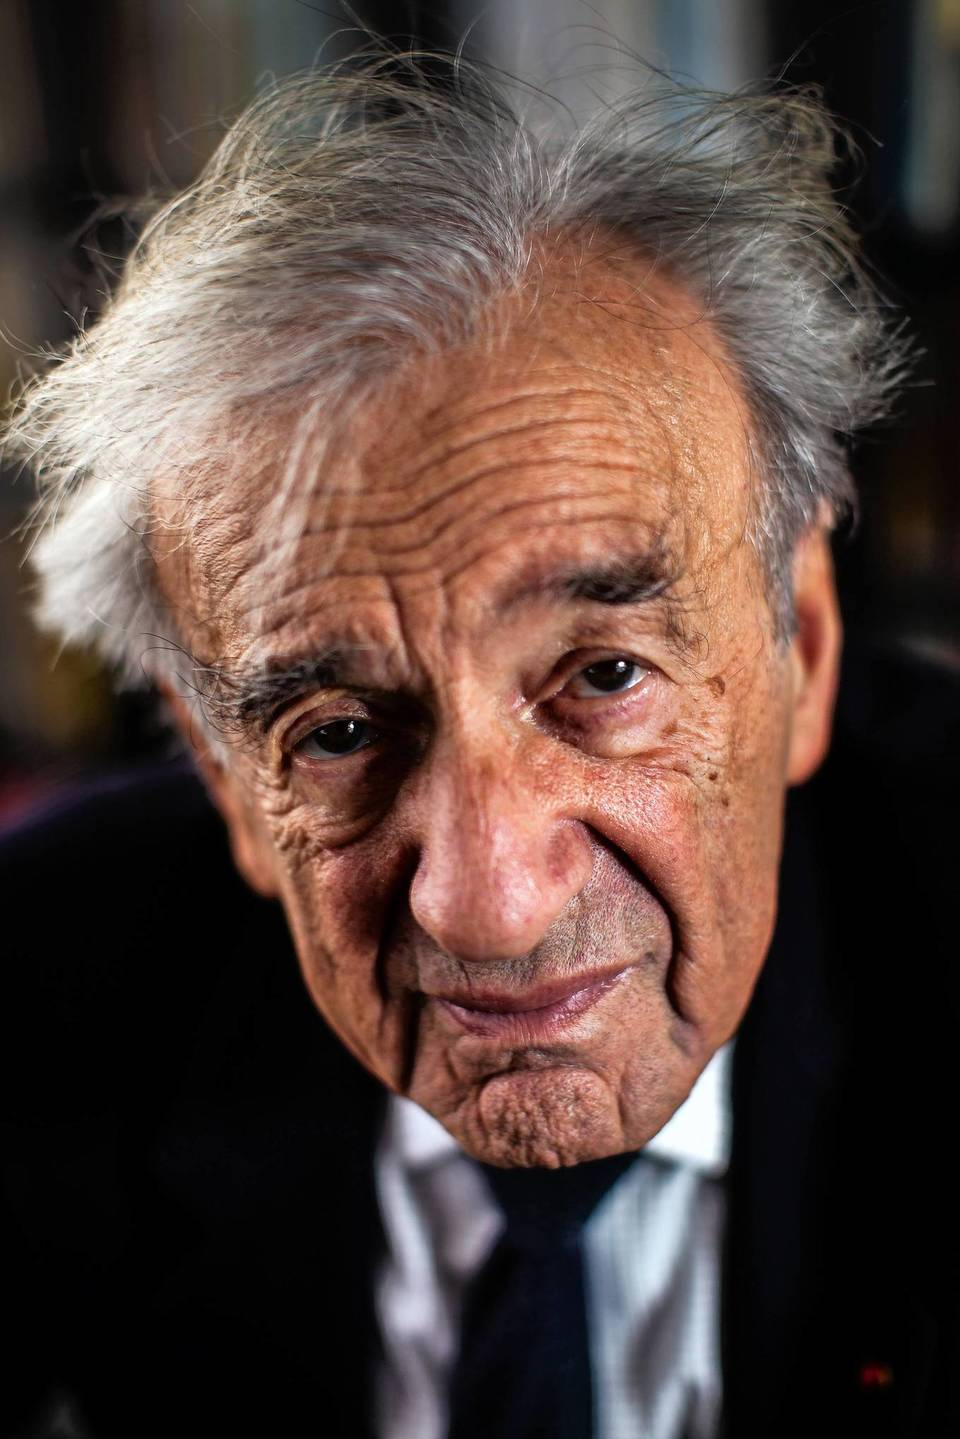 Author Elie Wiesel at his office in New York City. Professor Elie Wiesel is being awarded the Chicago Tribune Literary Award and will speak at the Chicago Humanities Festival on Sunday.